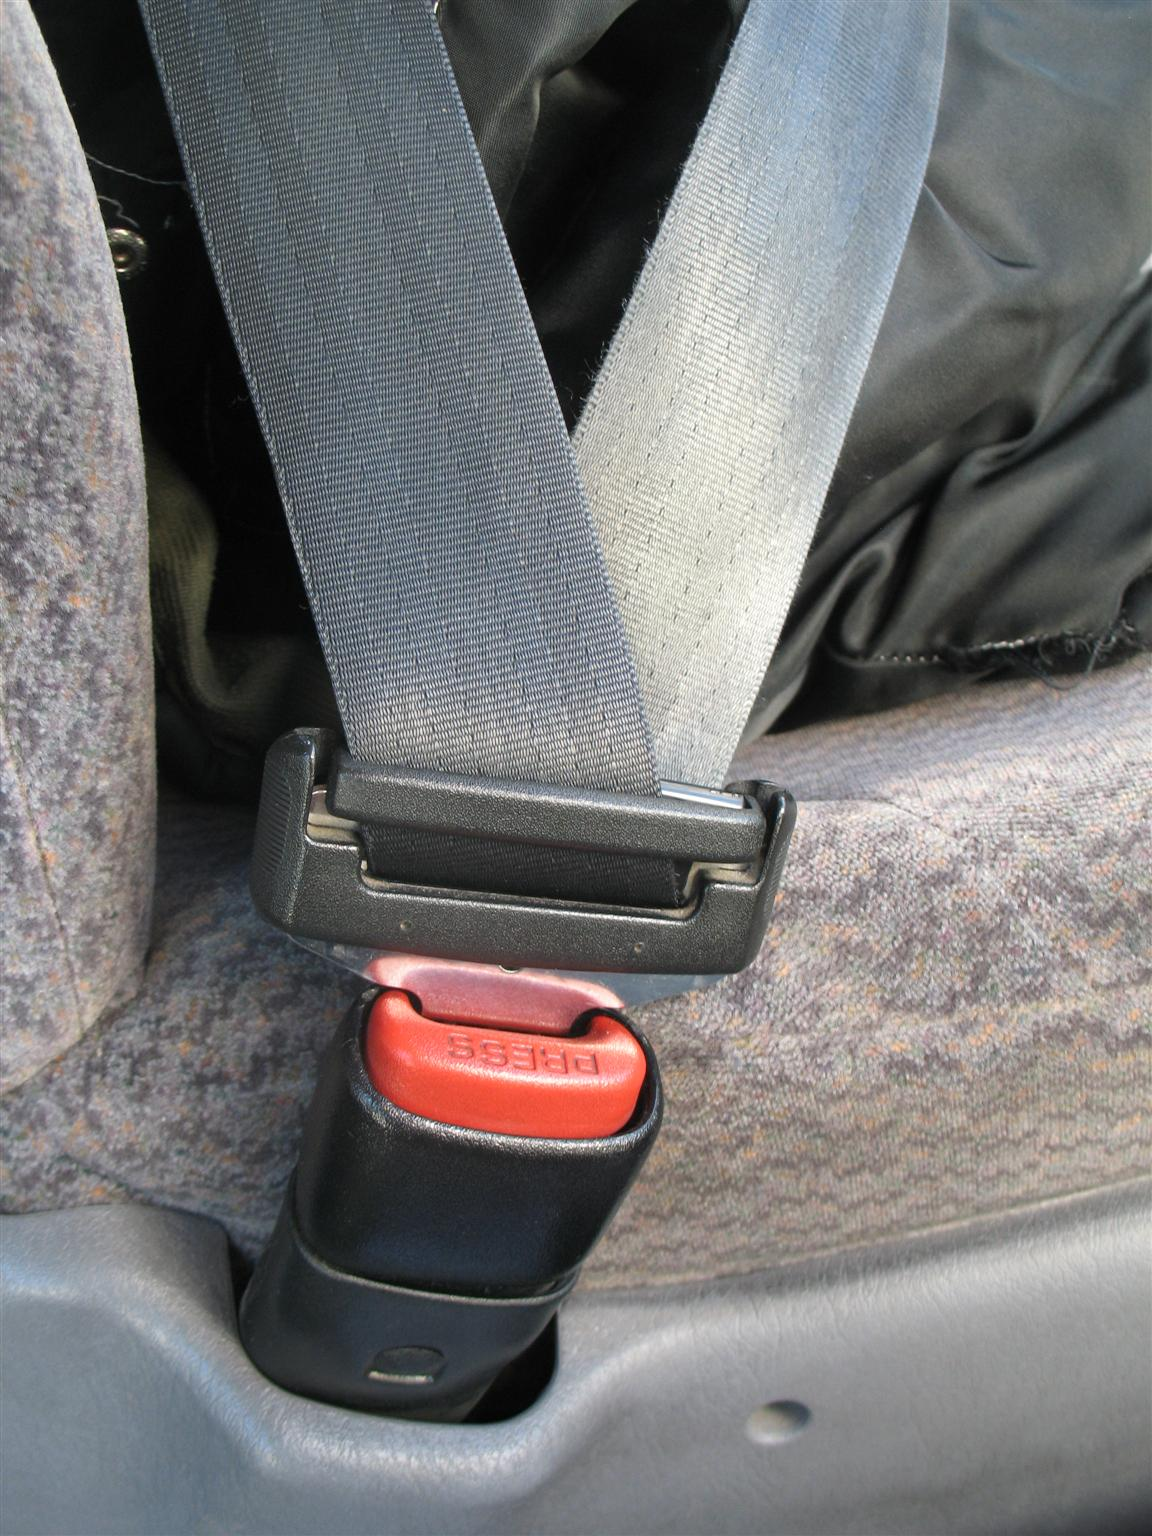 PennDOT And Police Partner To Encourage Increased Seat